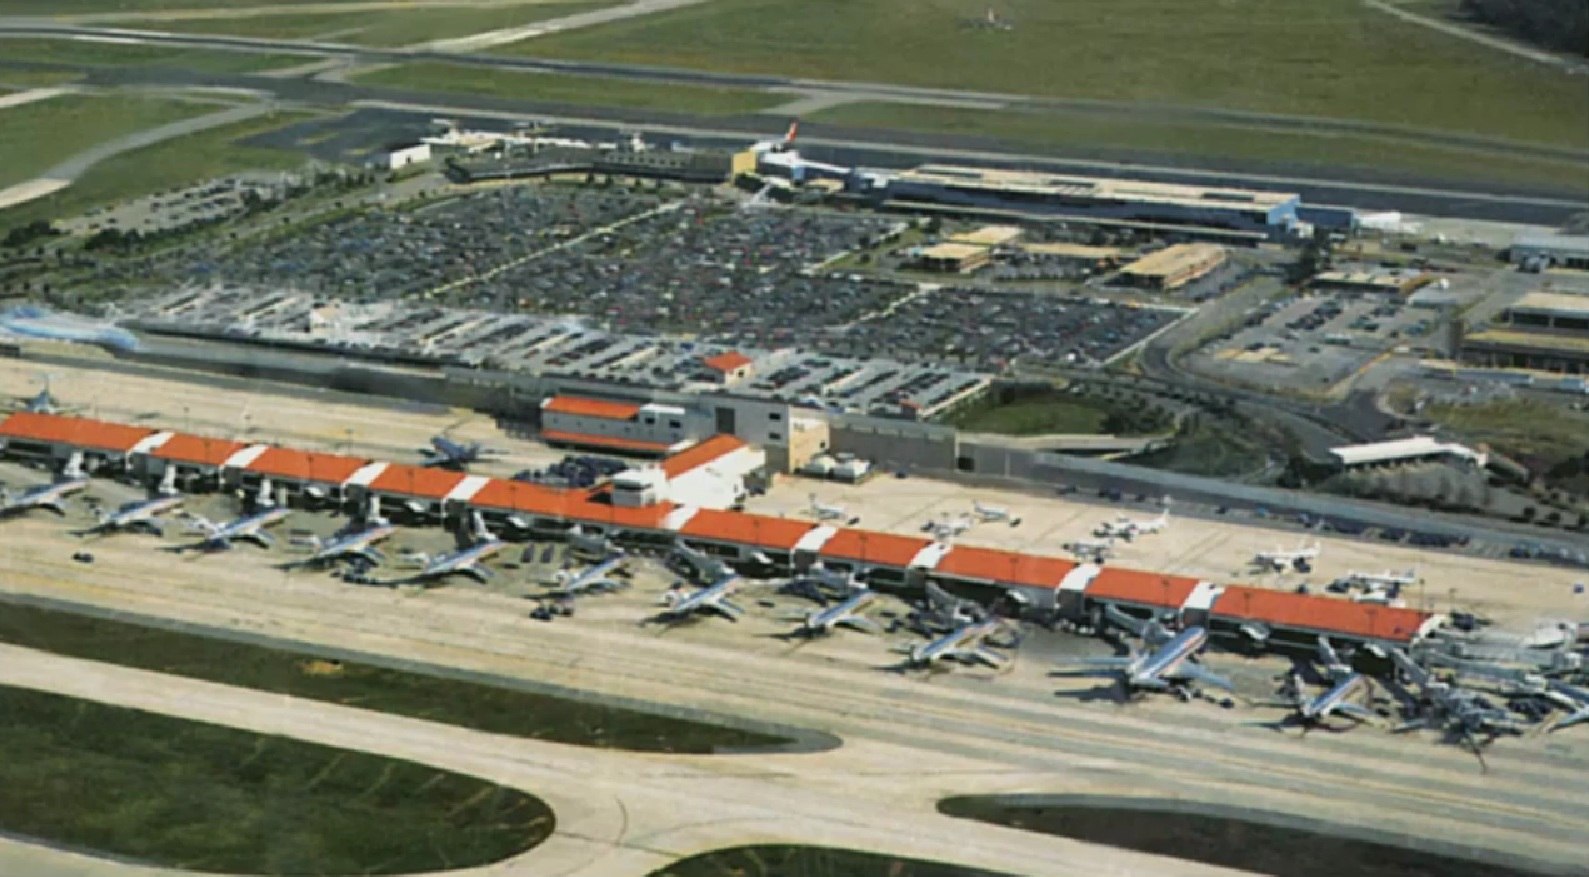 West Palm Beach Airport American Airlines Terminal